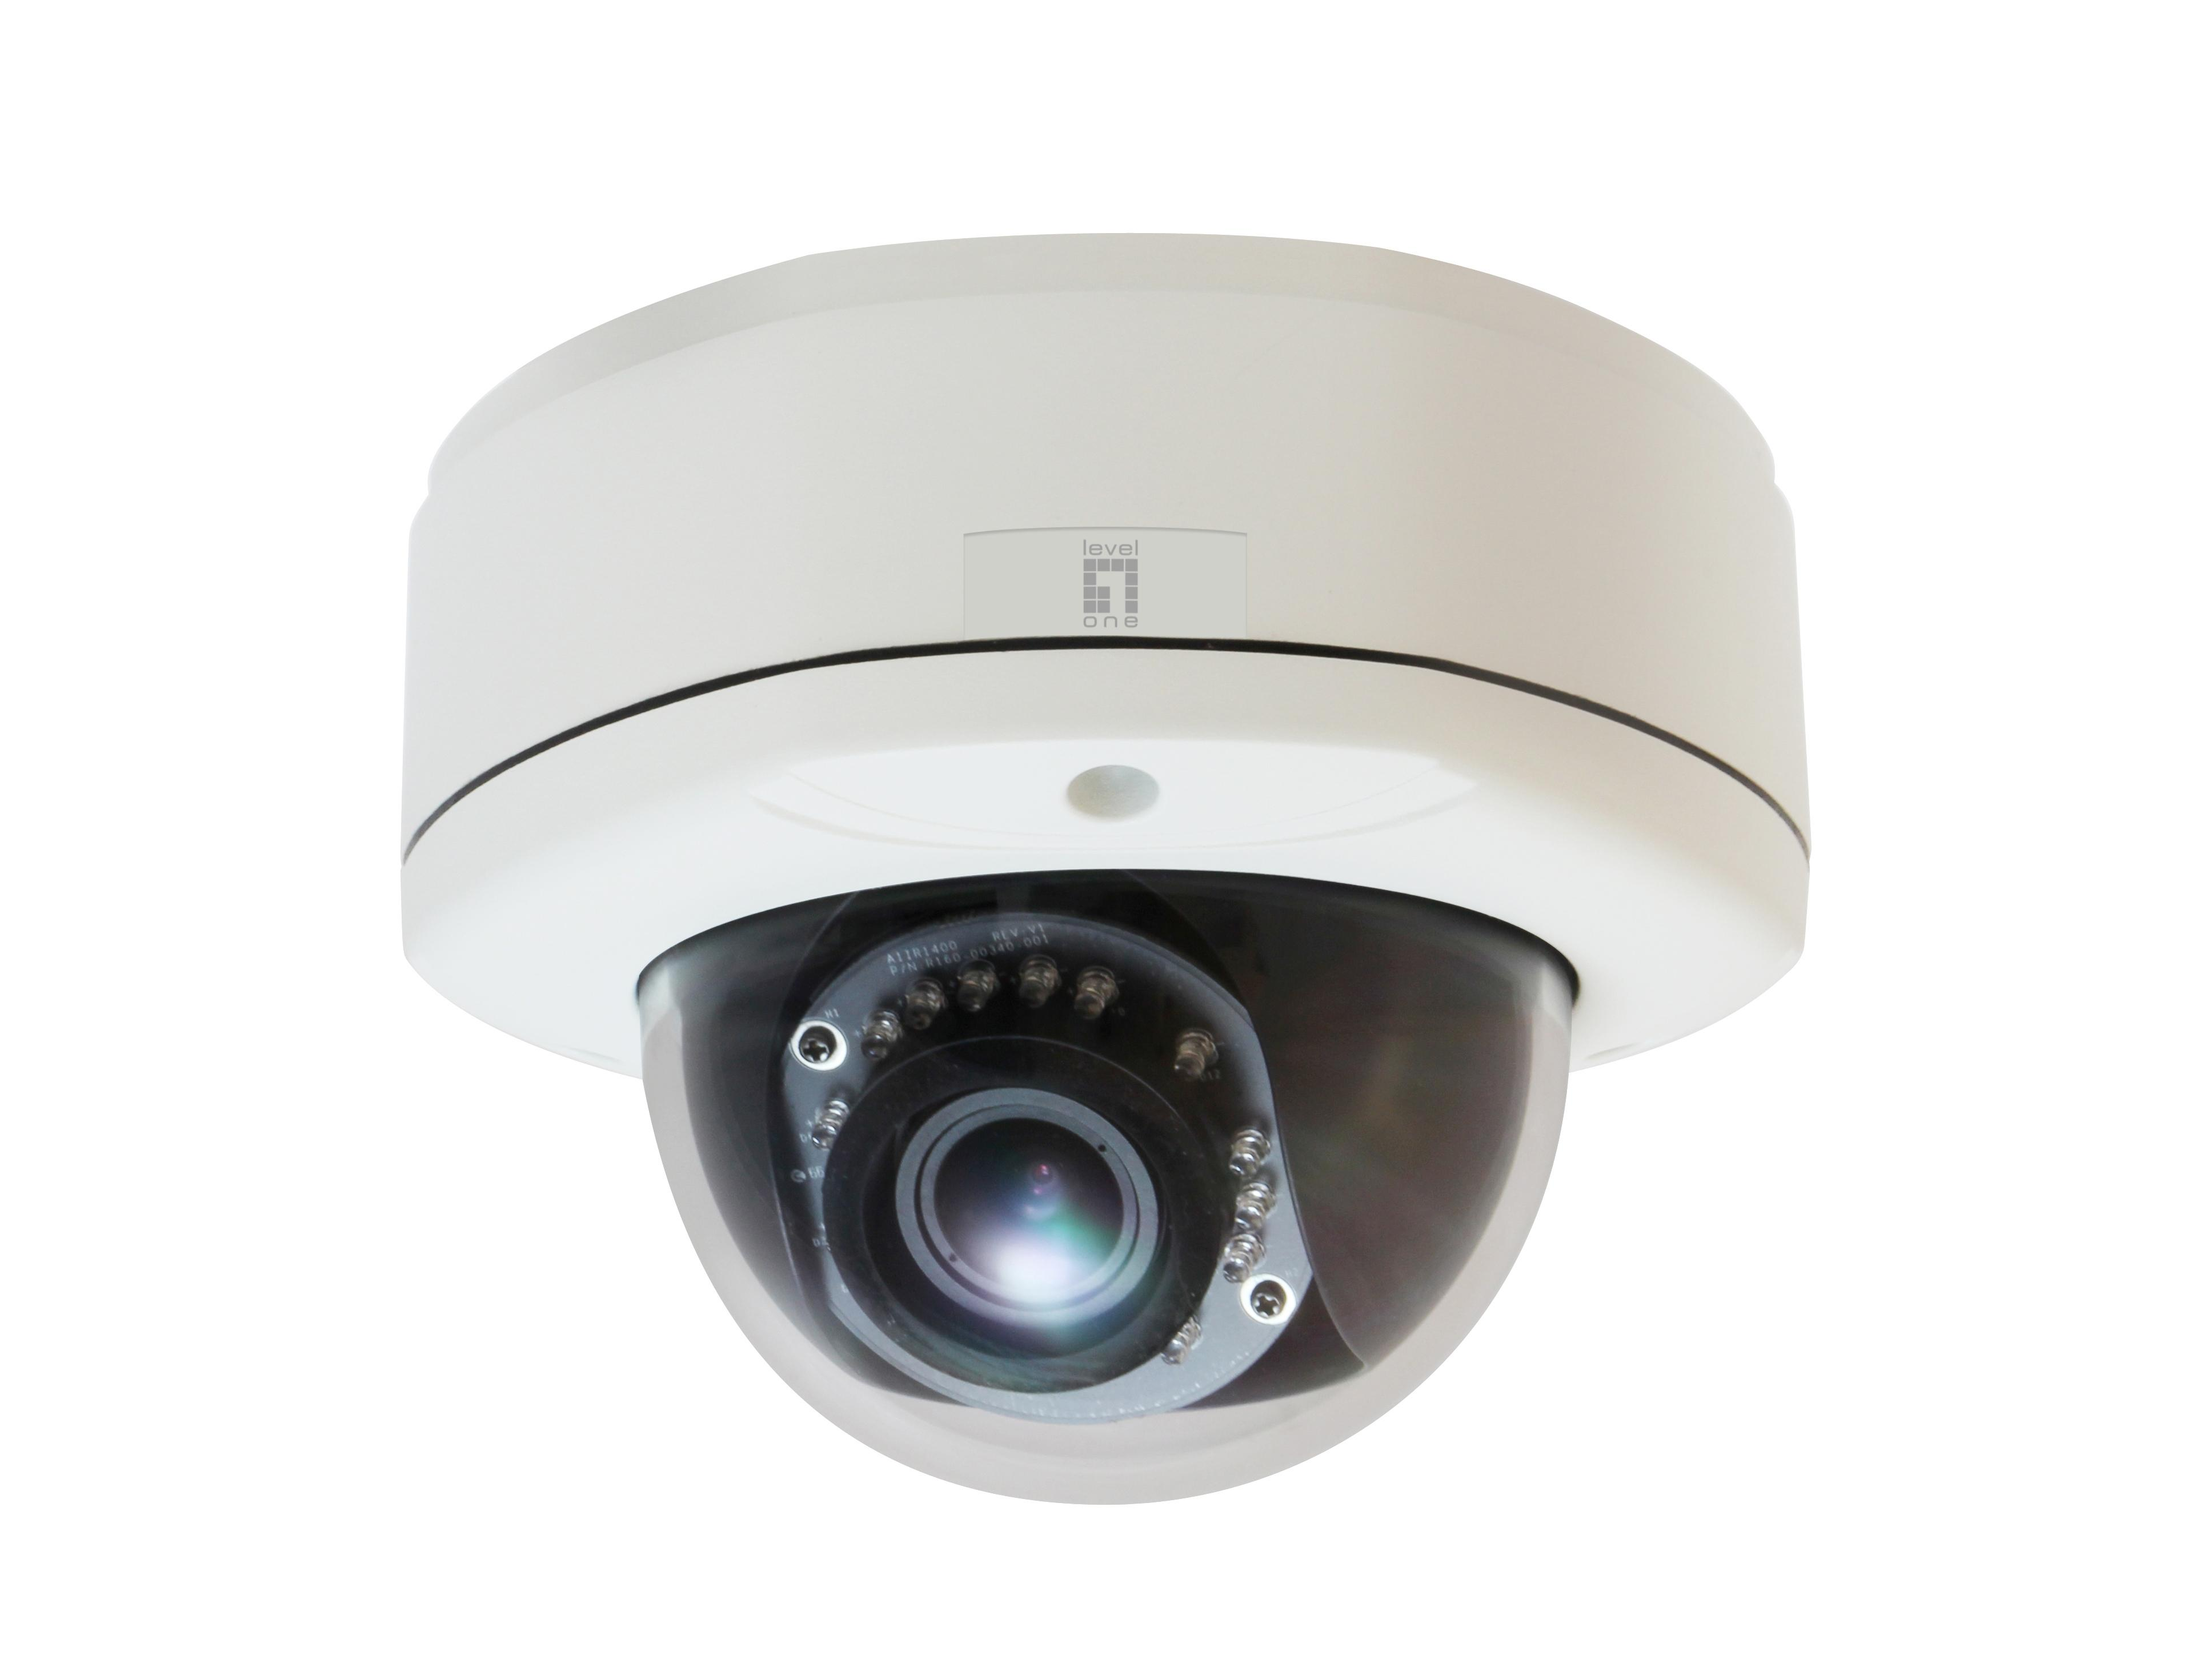 Level One LevelOne IPCam FCS-3082 Dome Out 3MP H.264 IR6,5W PoE - Tinklo kameros, monitoringas ir priedai